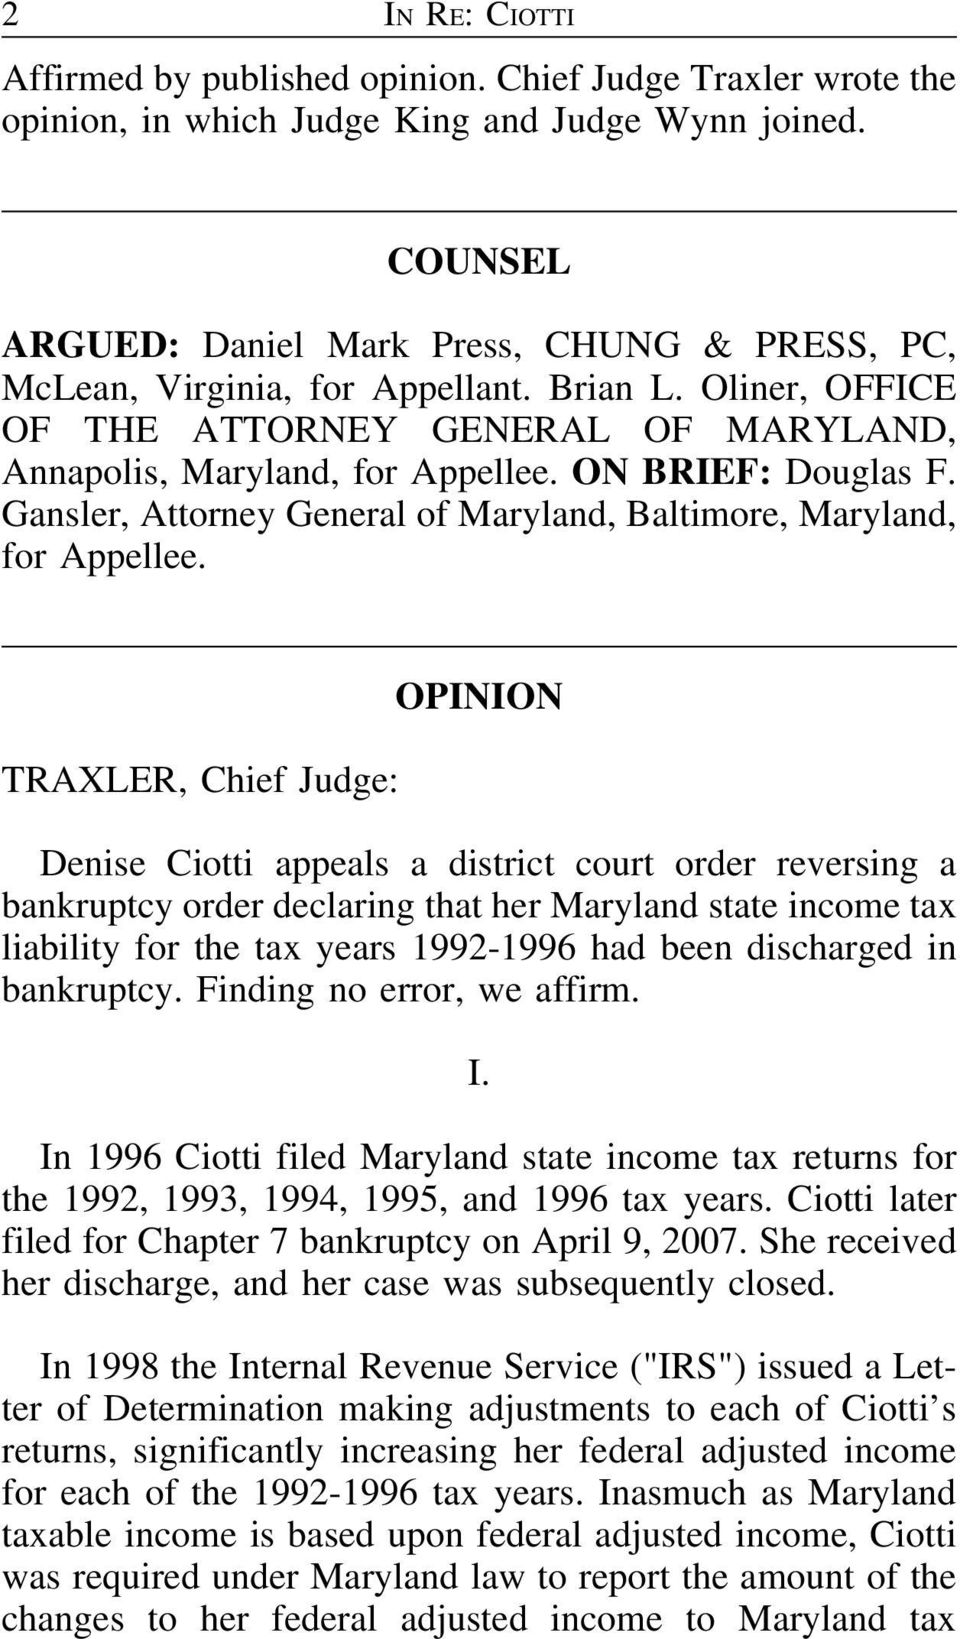 ON BRIEF: Douglas F. Gansler, Attorney General of Maryland, Baltimore, Maryland, for Appellee.